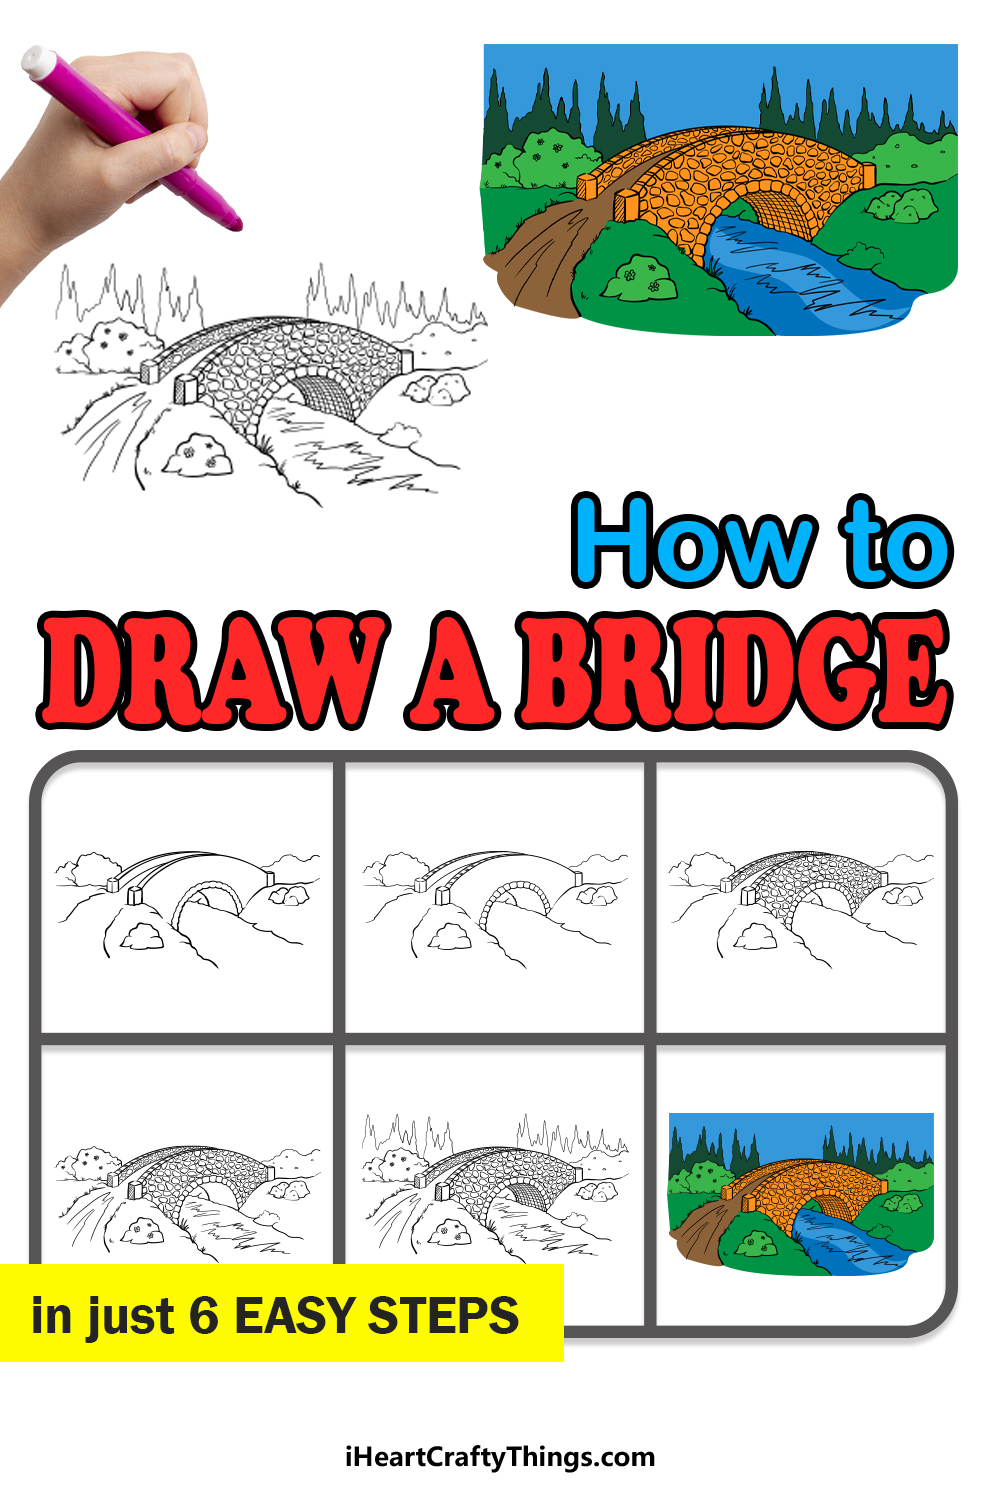 how to draw a bridge in 6 easy steps